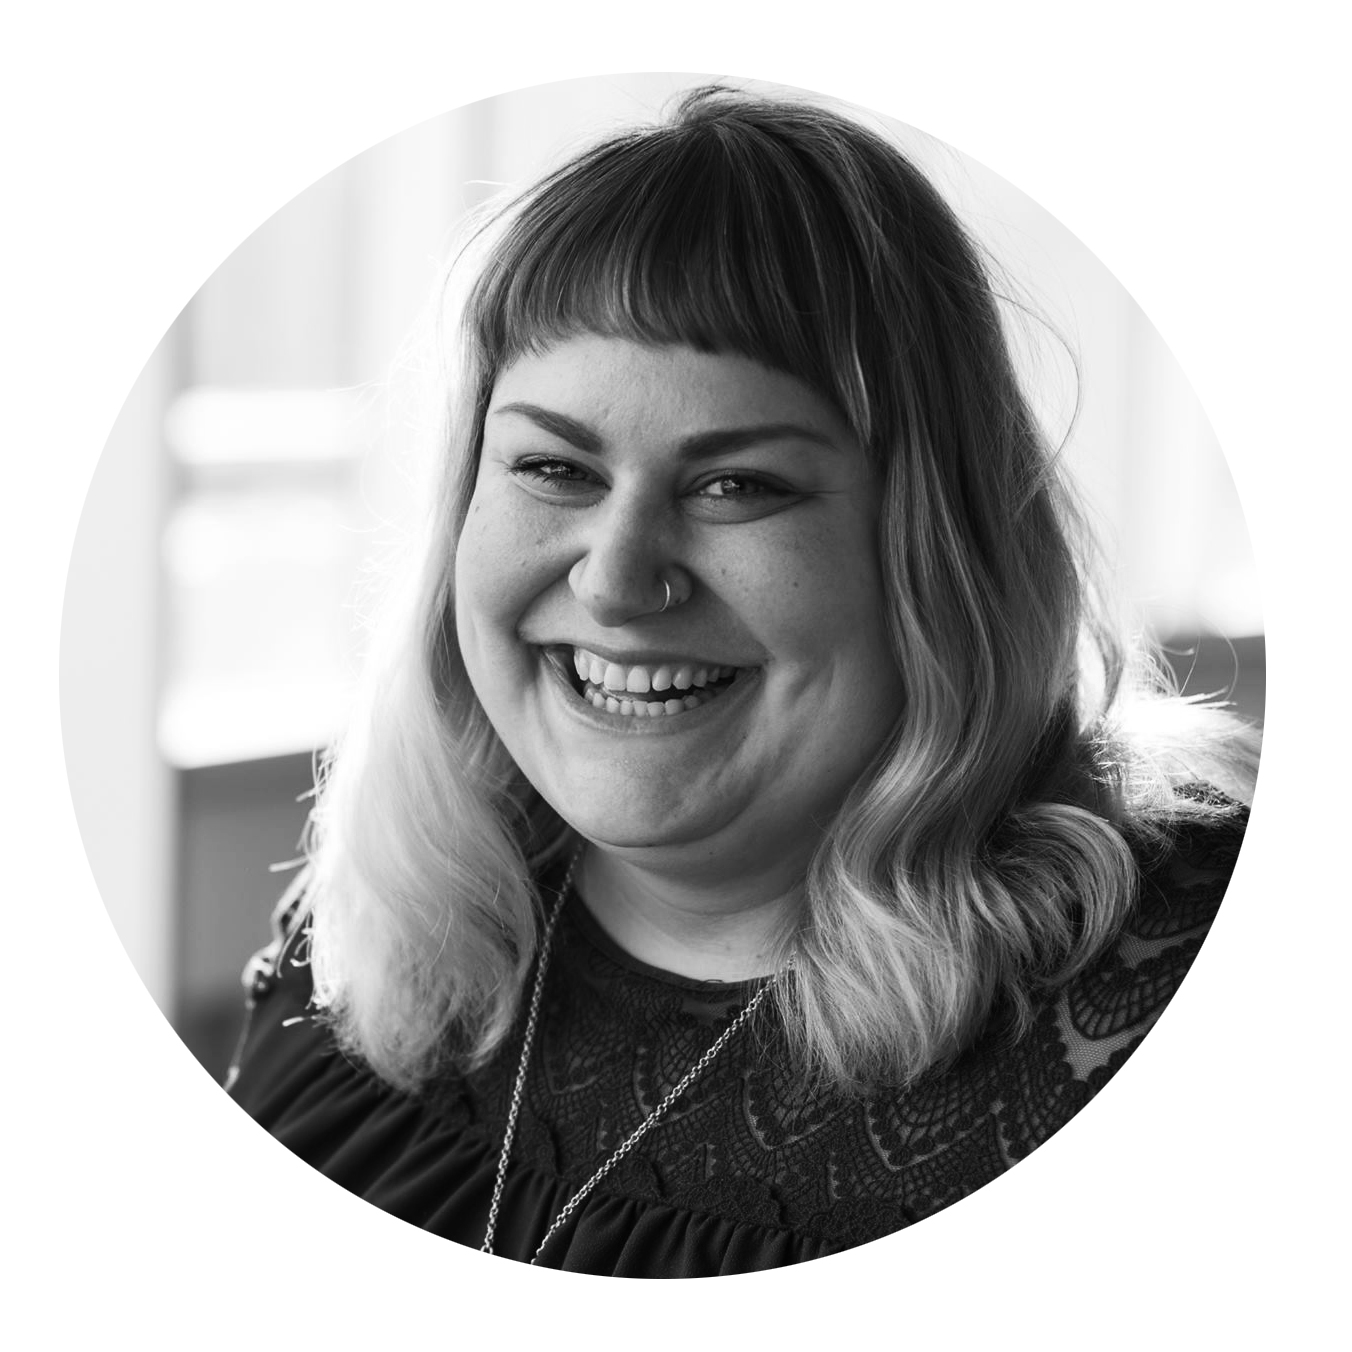 Lydia - Creative Team Lead at Meijer and Founder of the Grand Rapids Feminist Film Festival and The Bandit Zine